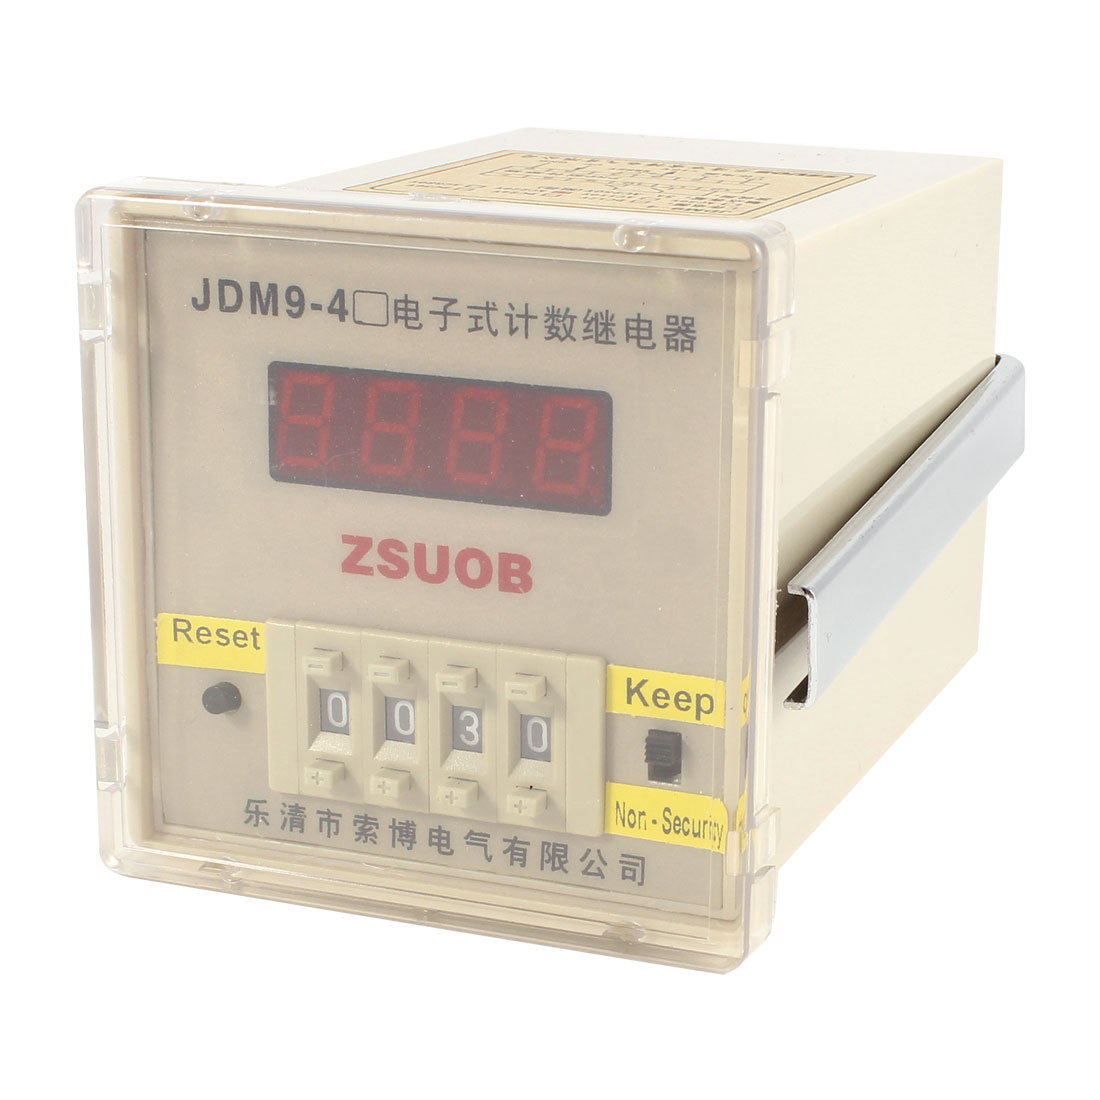 JDM9-4 AC 220V 1-9999 Range Count Up Programmable Digital Counter Relay